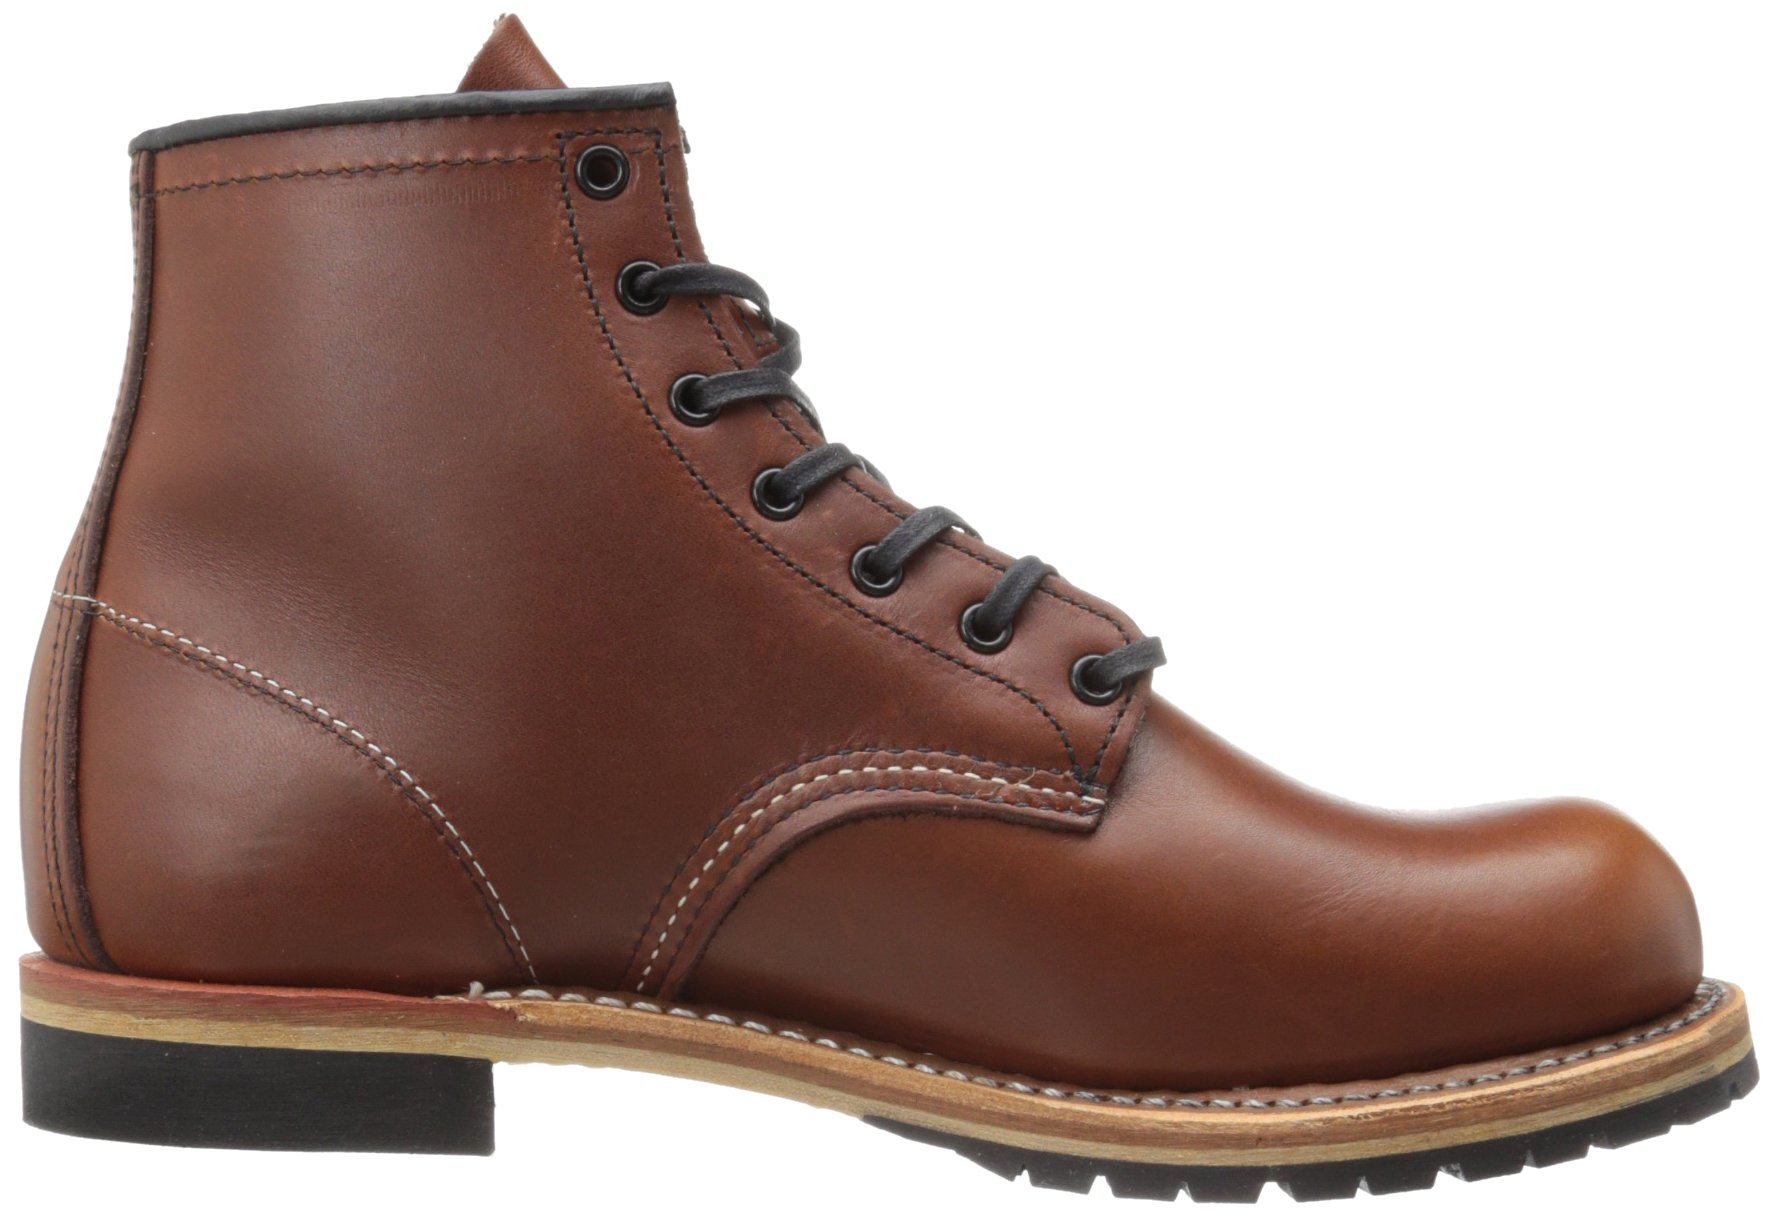 Red Wing Heritage Beckman Round Boot review